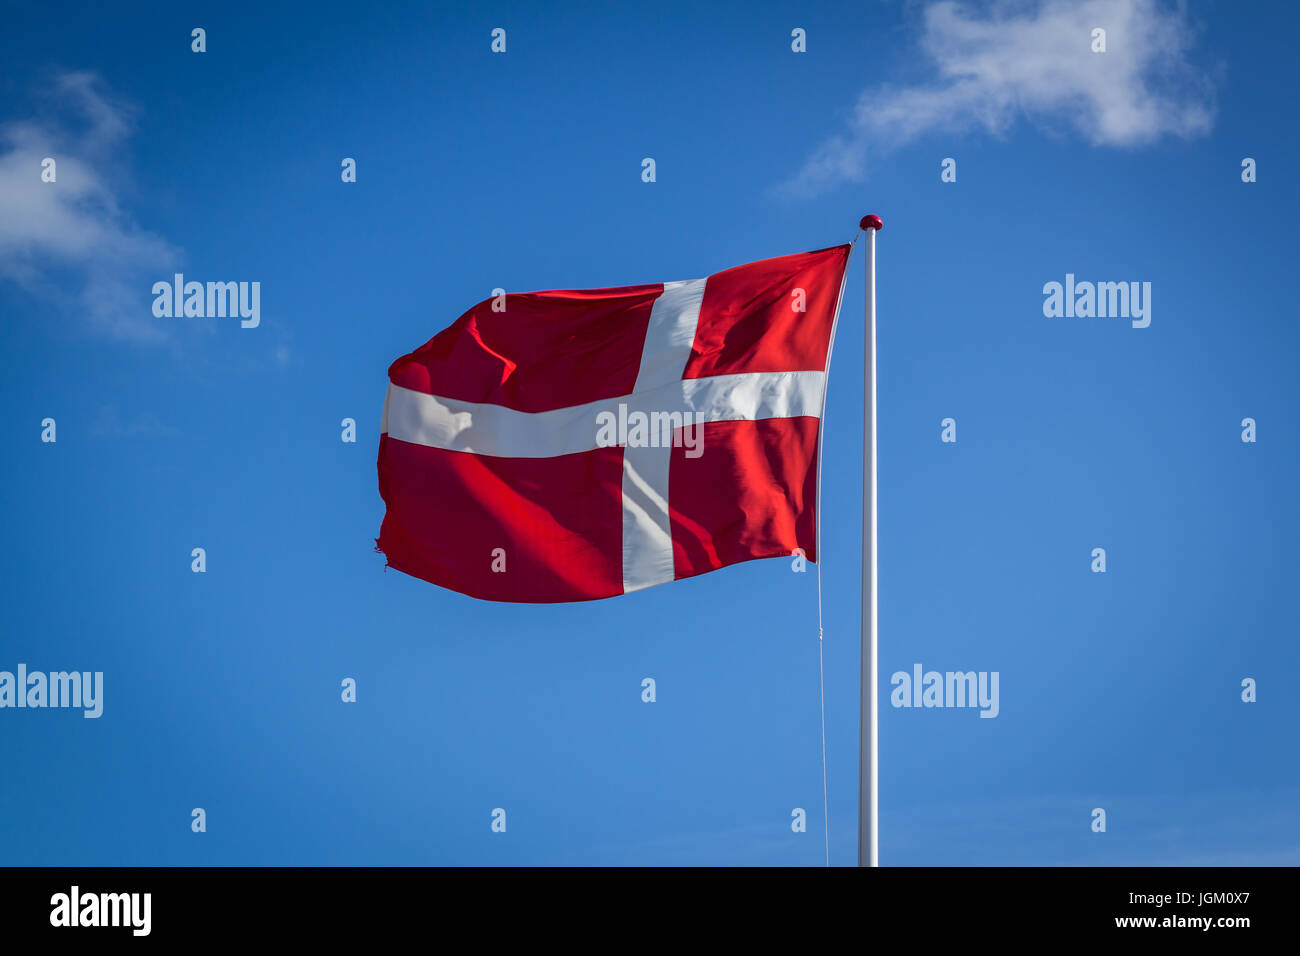 Danish flag in sunshine against blue sky with clouds, horizontal - Stock Image